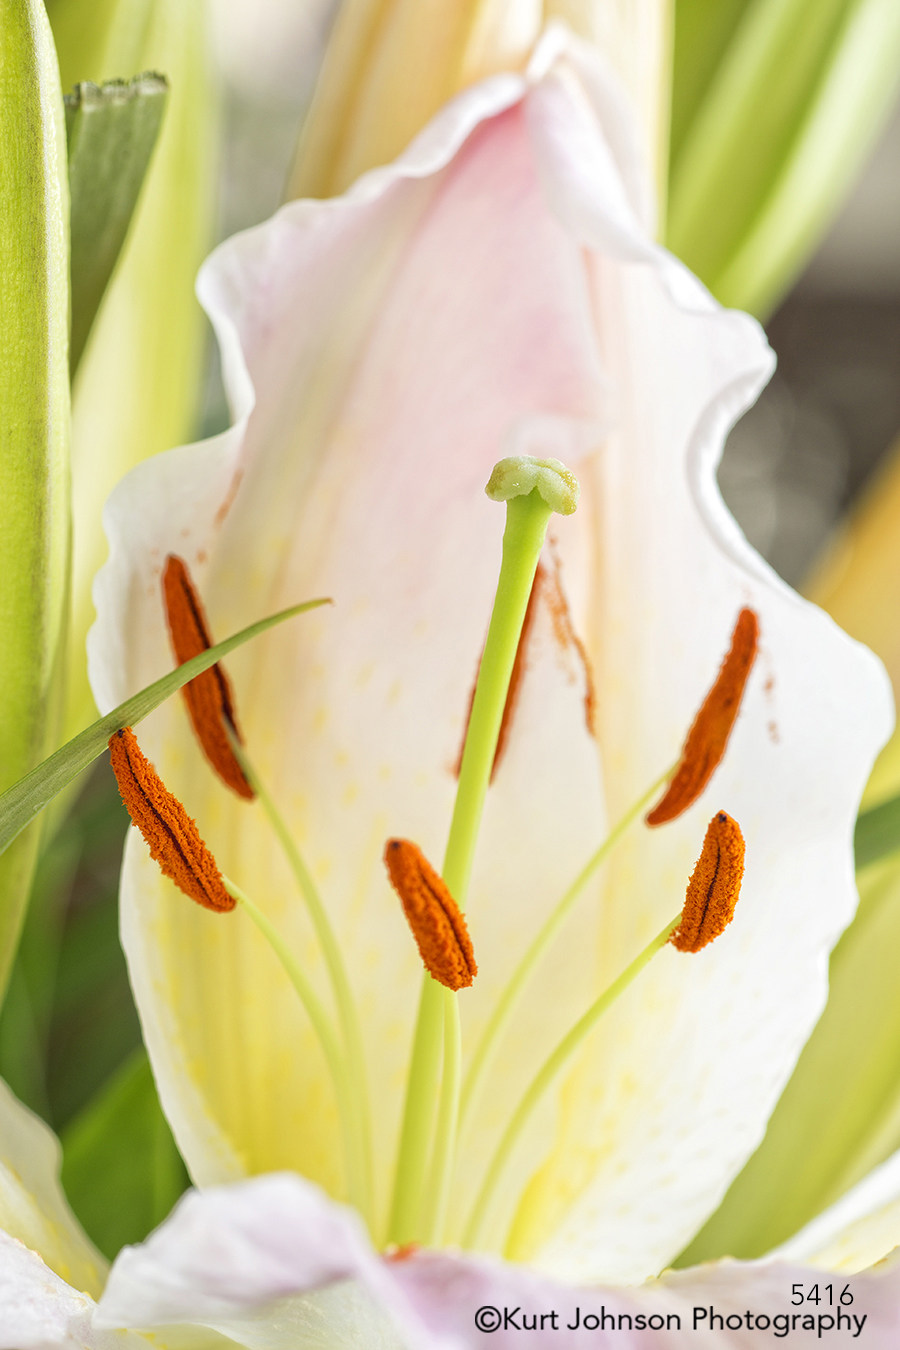 lily stamen close up detail macro yellow pink green grass flower lines contemporary